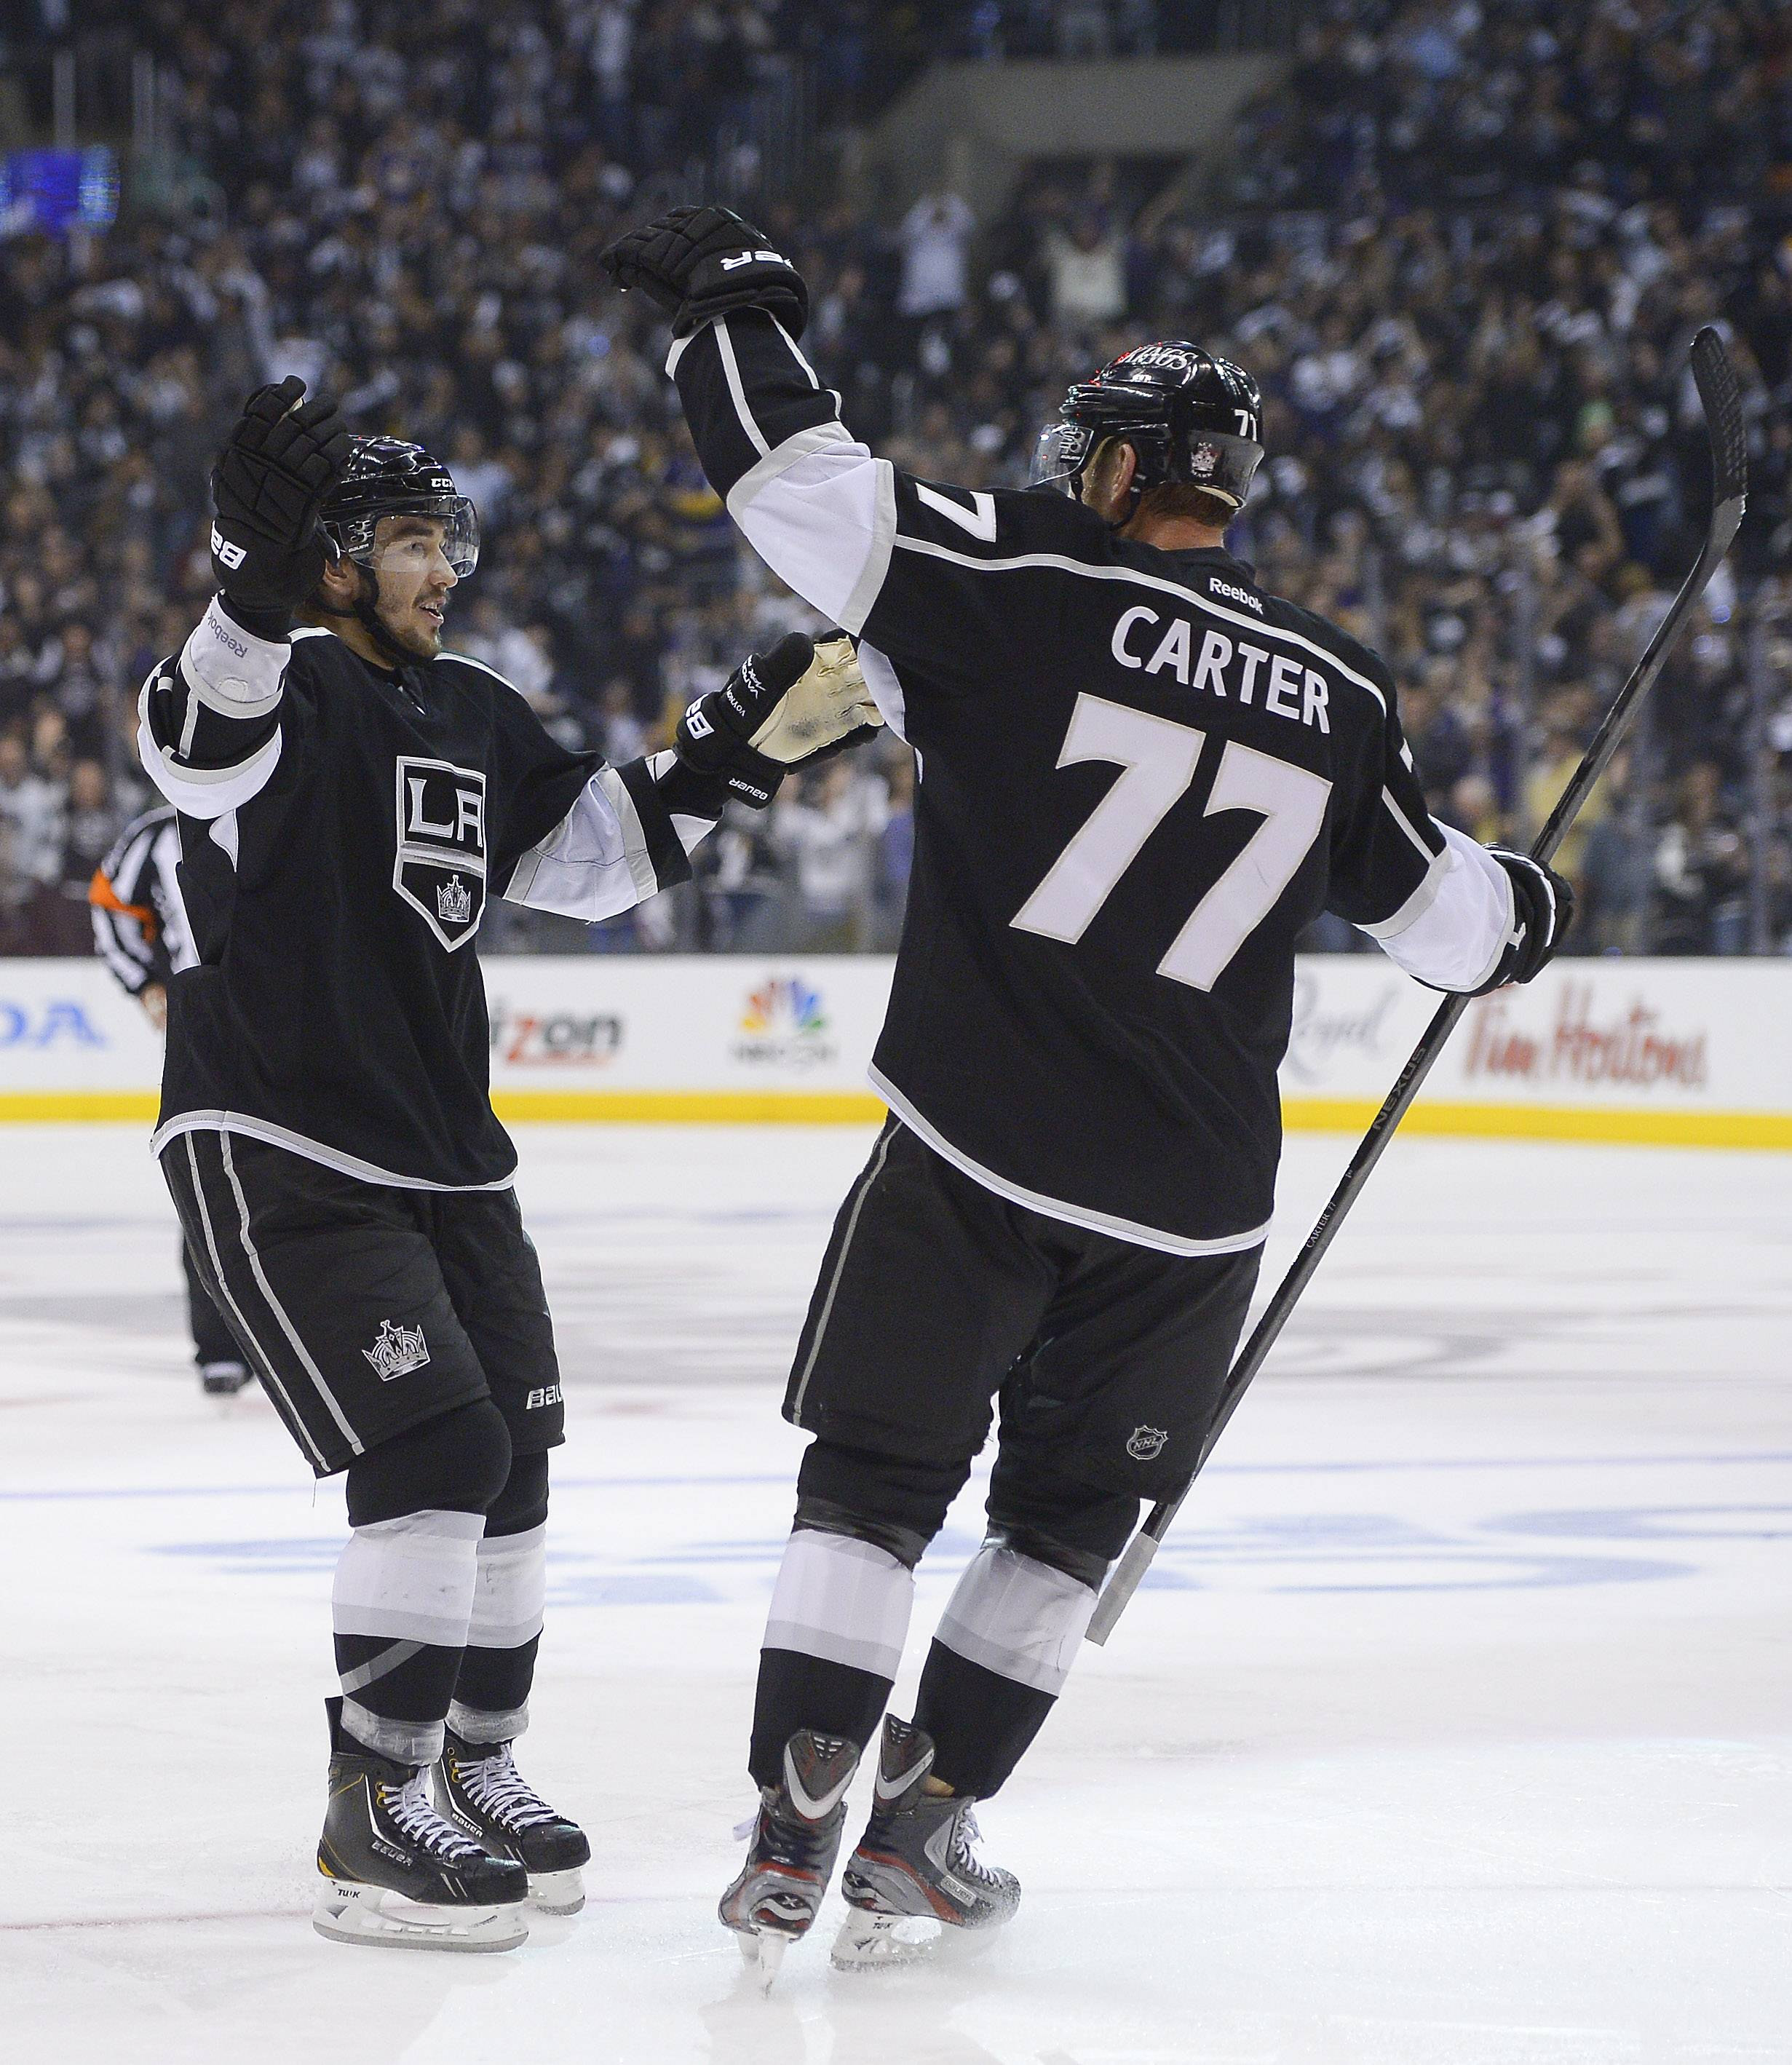 Los Angeles Kings defenseman Slava Voynov, left, celebrates with center Jeff Carter (77) after scoring a goal against the Chicago Blackhawks during the second period in Game 3 of the NHL hockey Stanley Cup playoffs Western Conference finals, Tuesday, June 4, 2013, in Los Angeles.